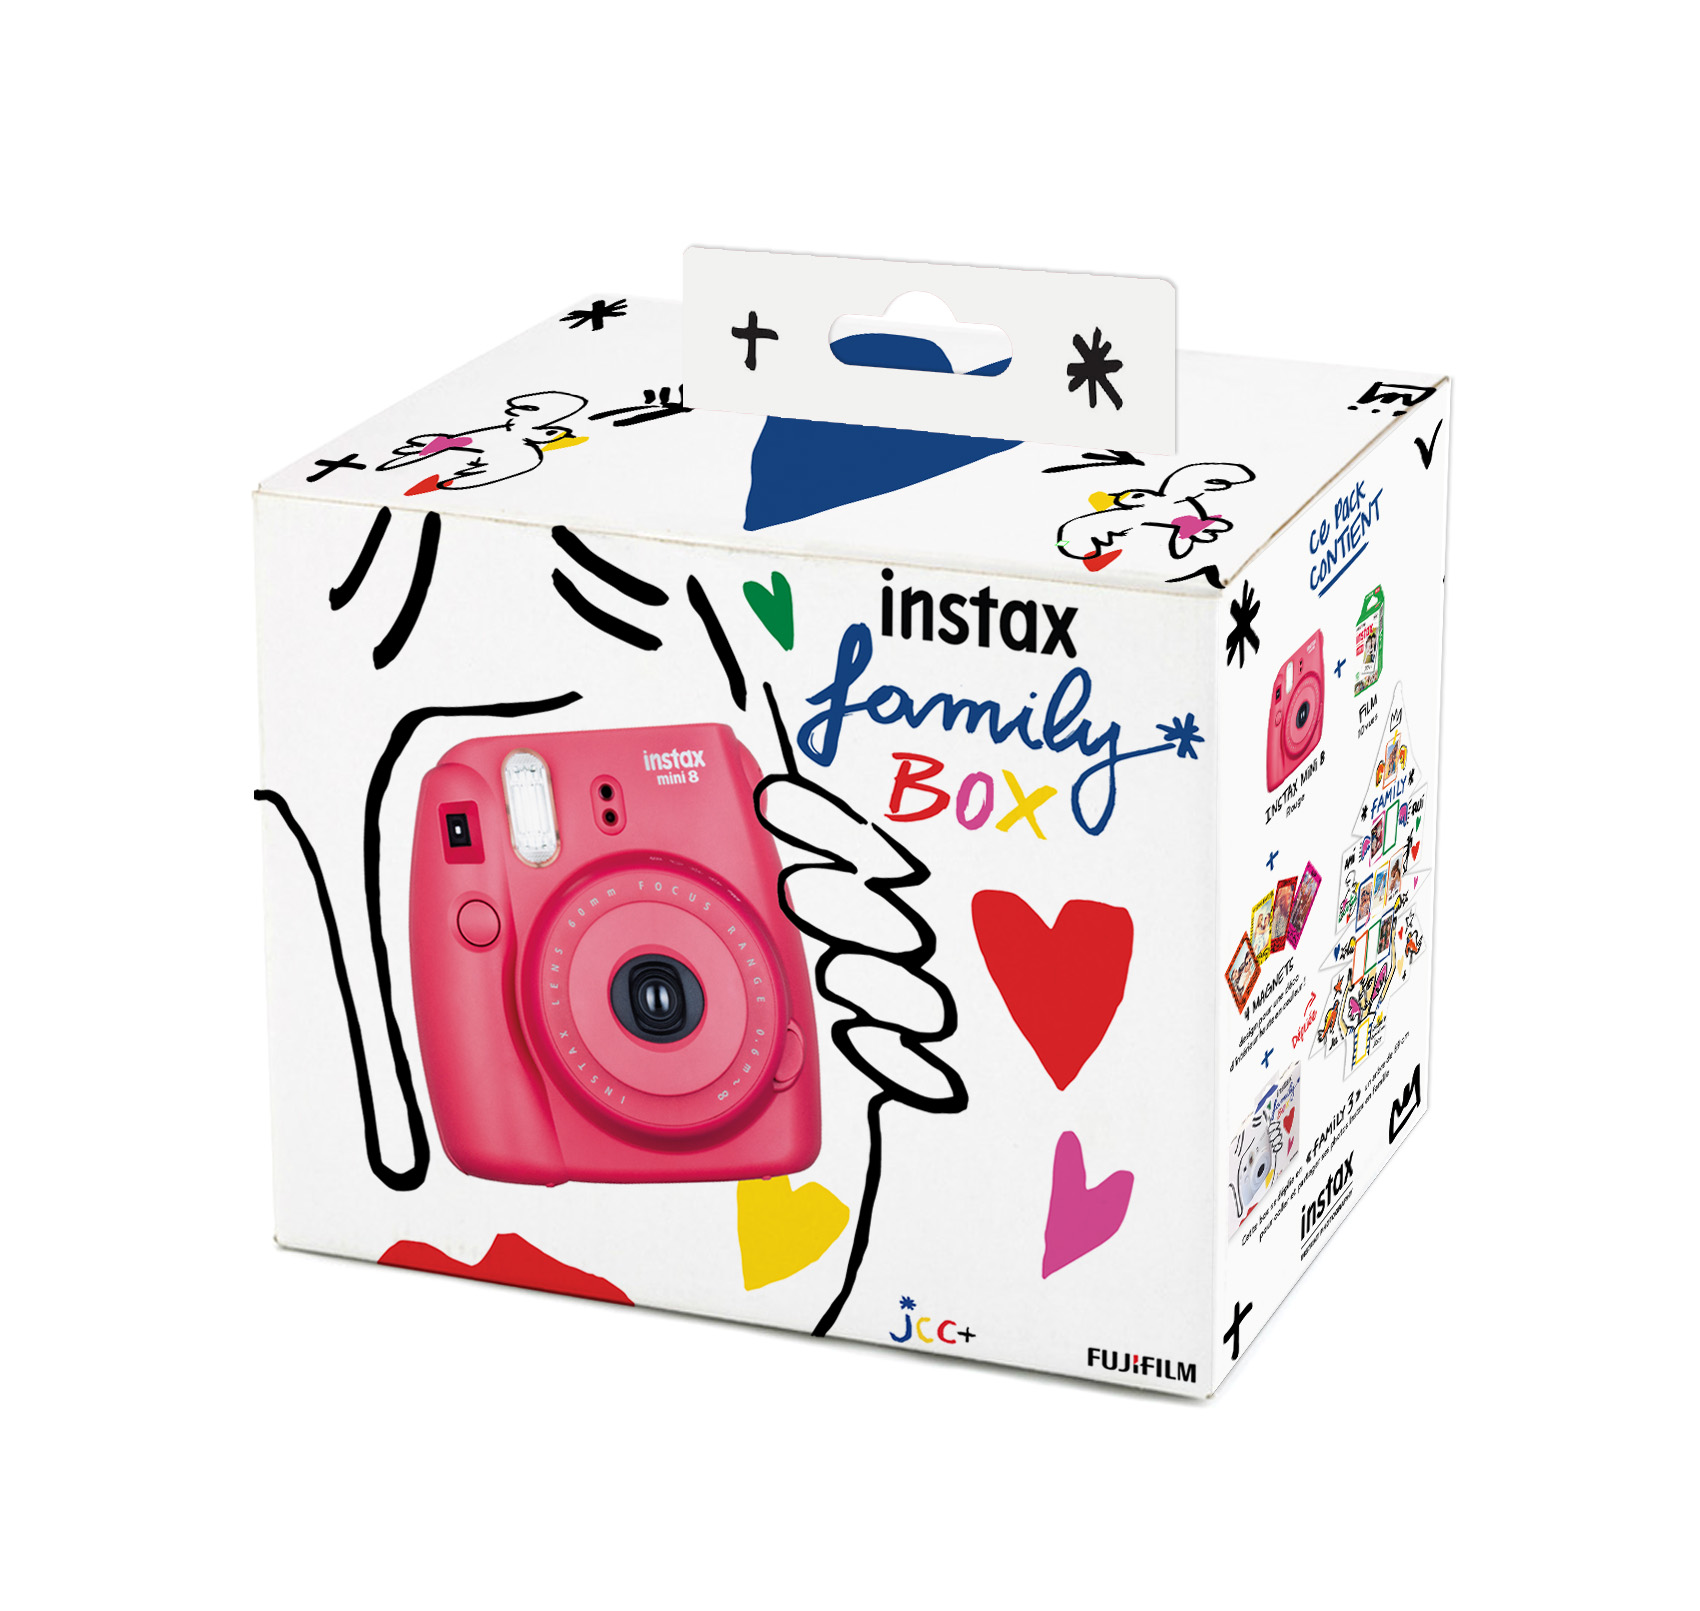 Instax Family Box by JCC+ Rouge 3D 2.jpg